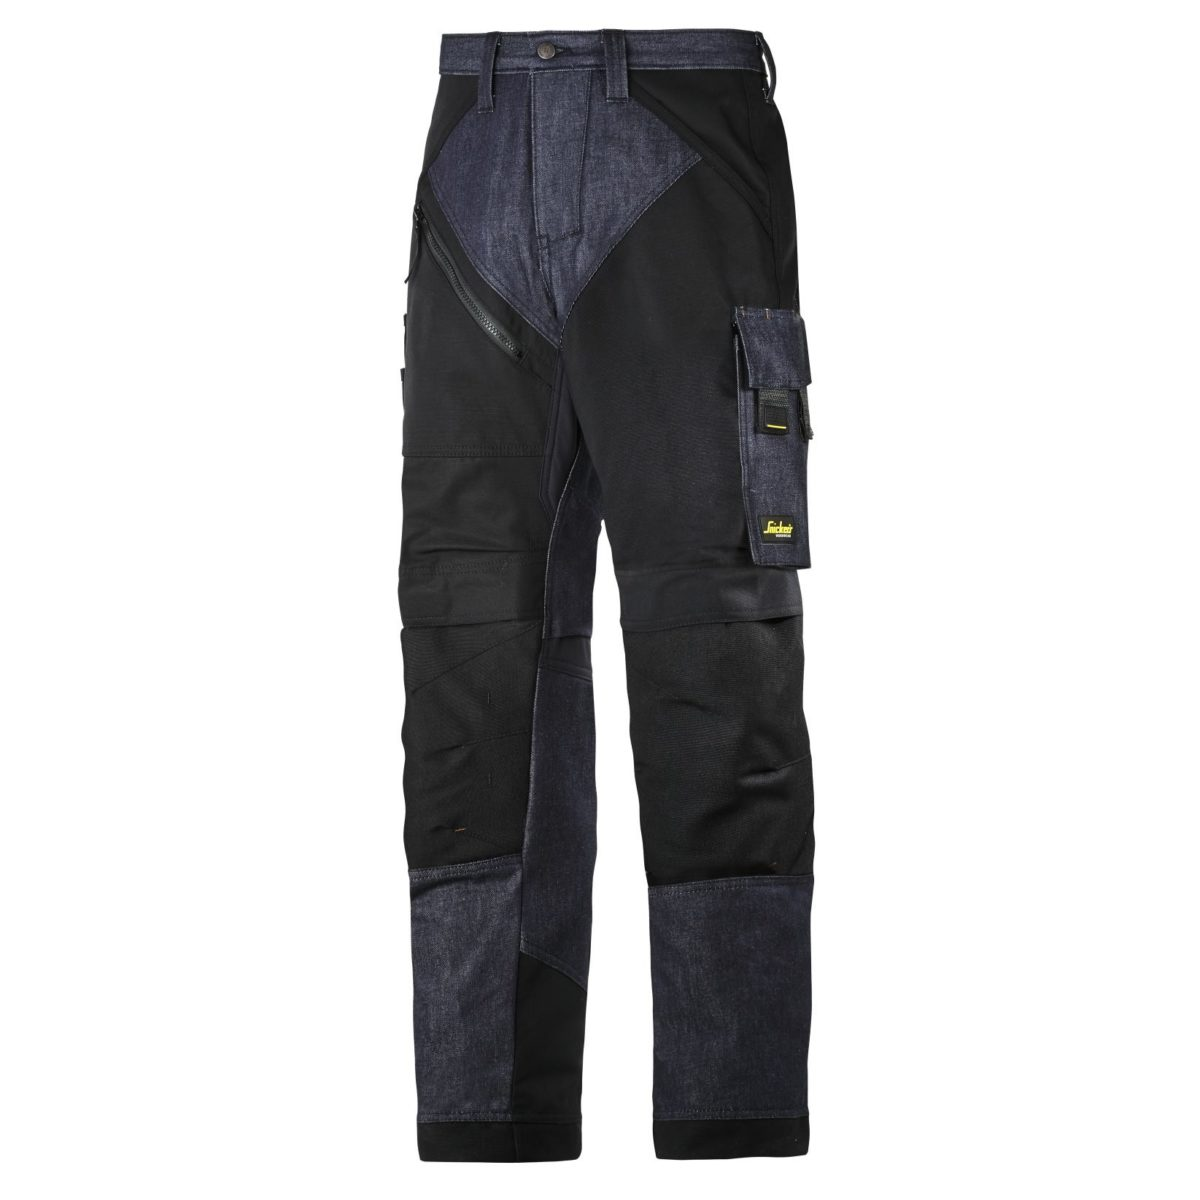 Snickers 6305 RuffWork Denim Work Trousers